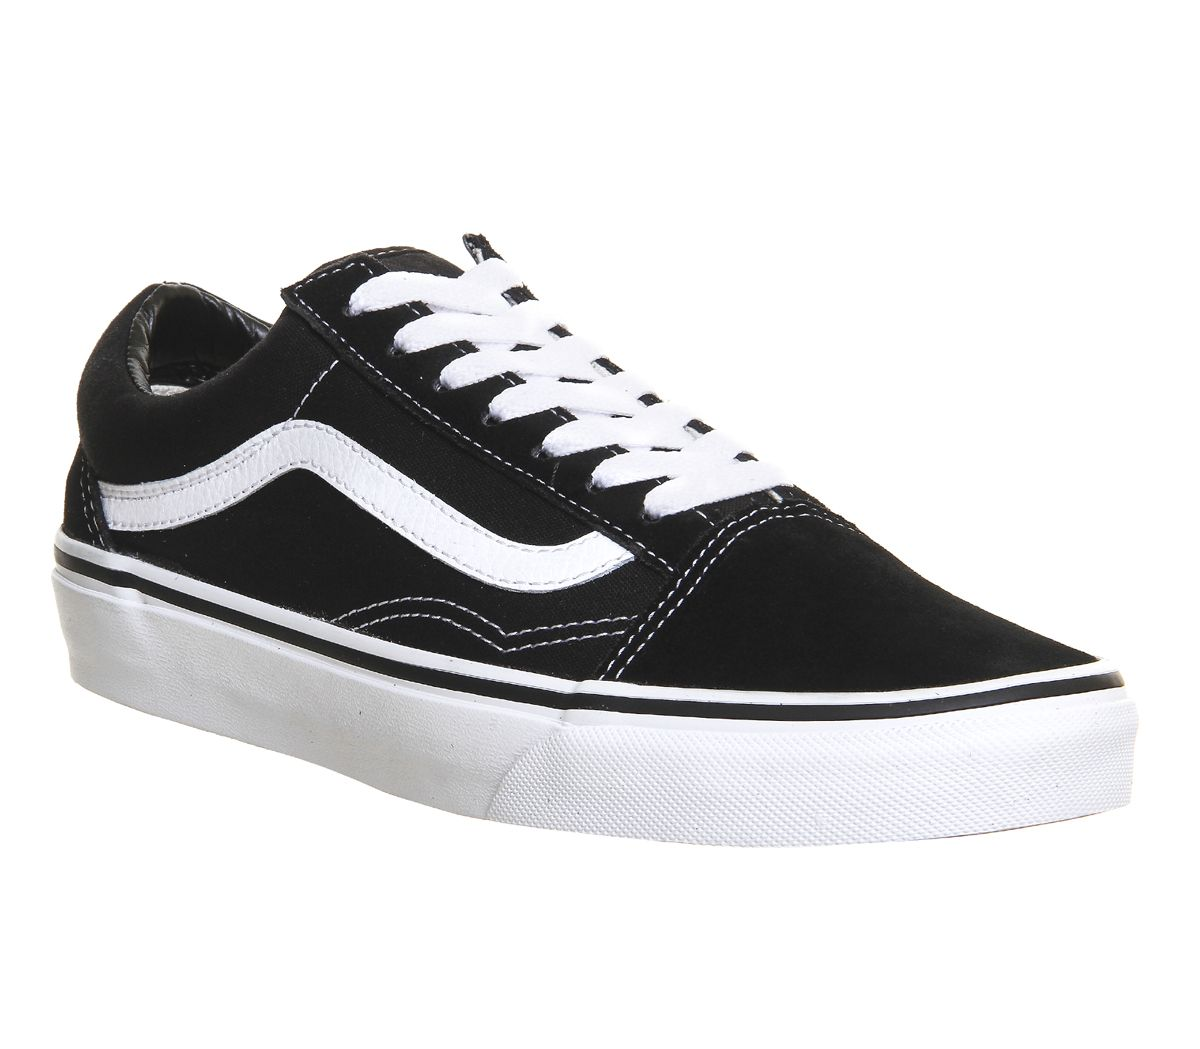 faf068833c Vans Old Skool Trainers Black - Unisex Sports